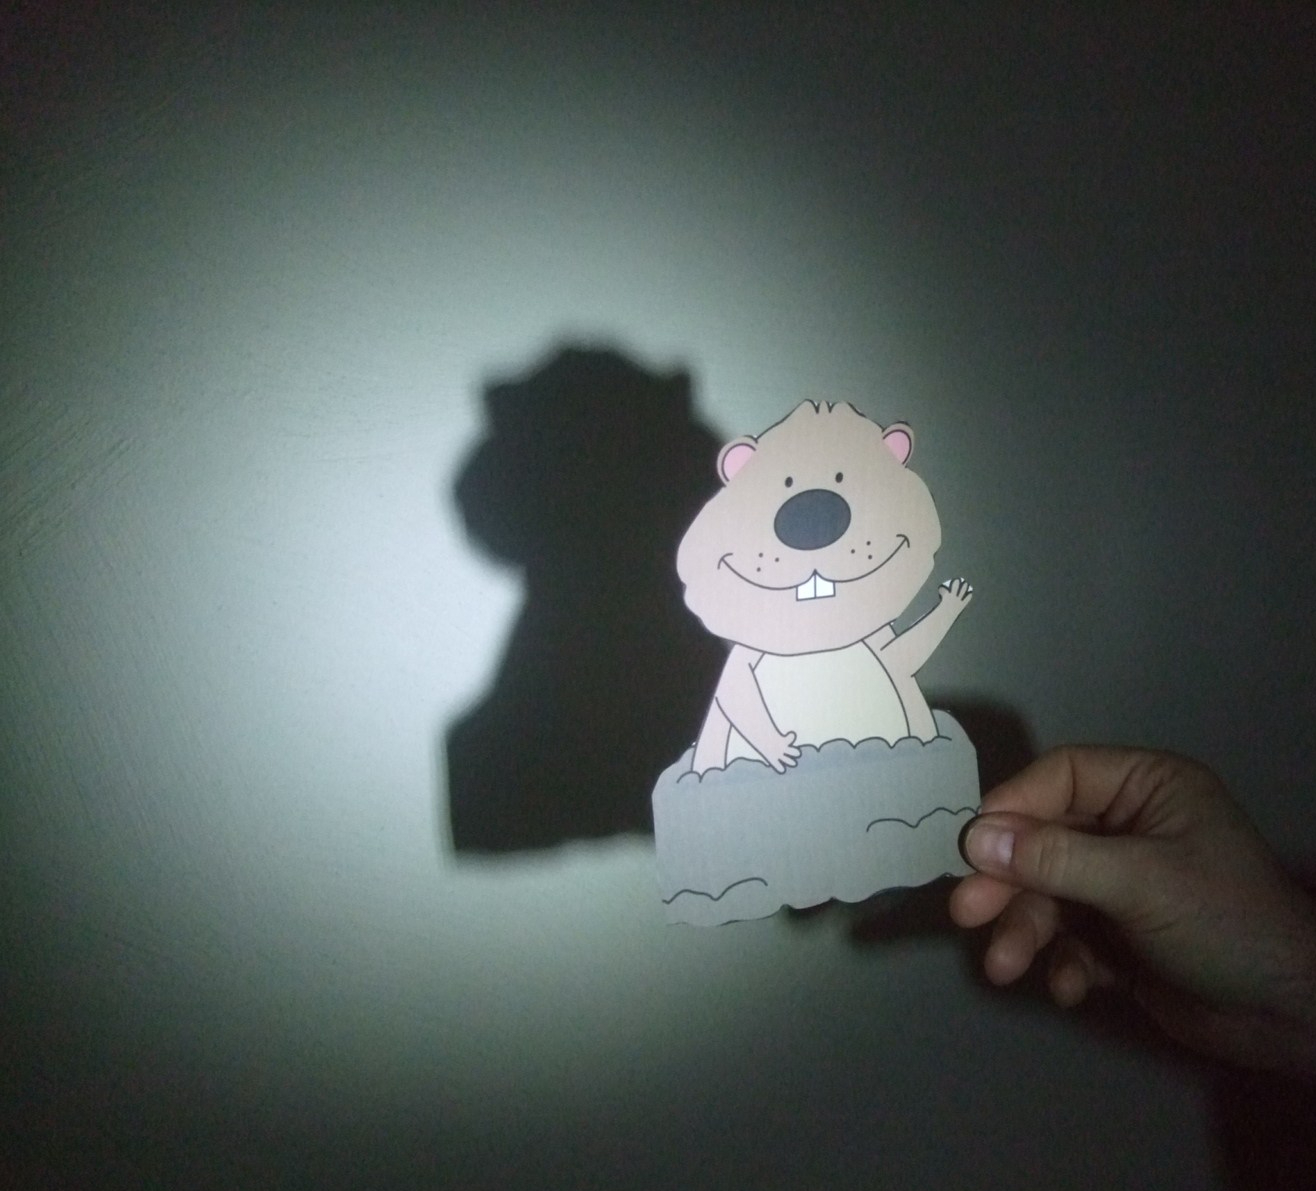 medium resolution of Groundhog Day Activities (shadow experiments